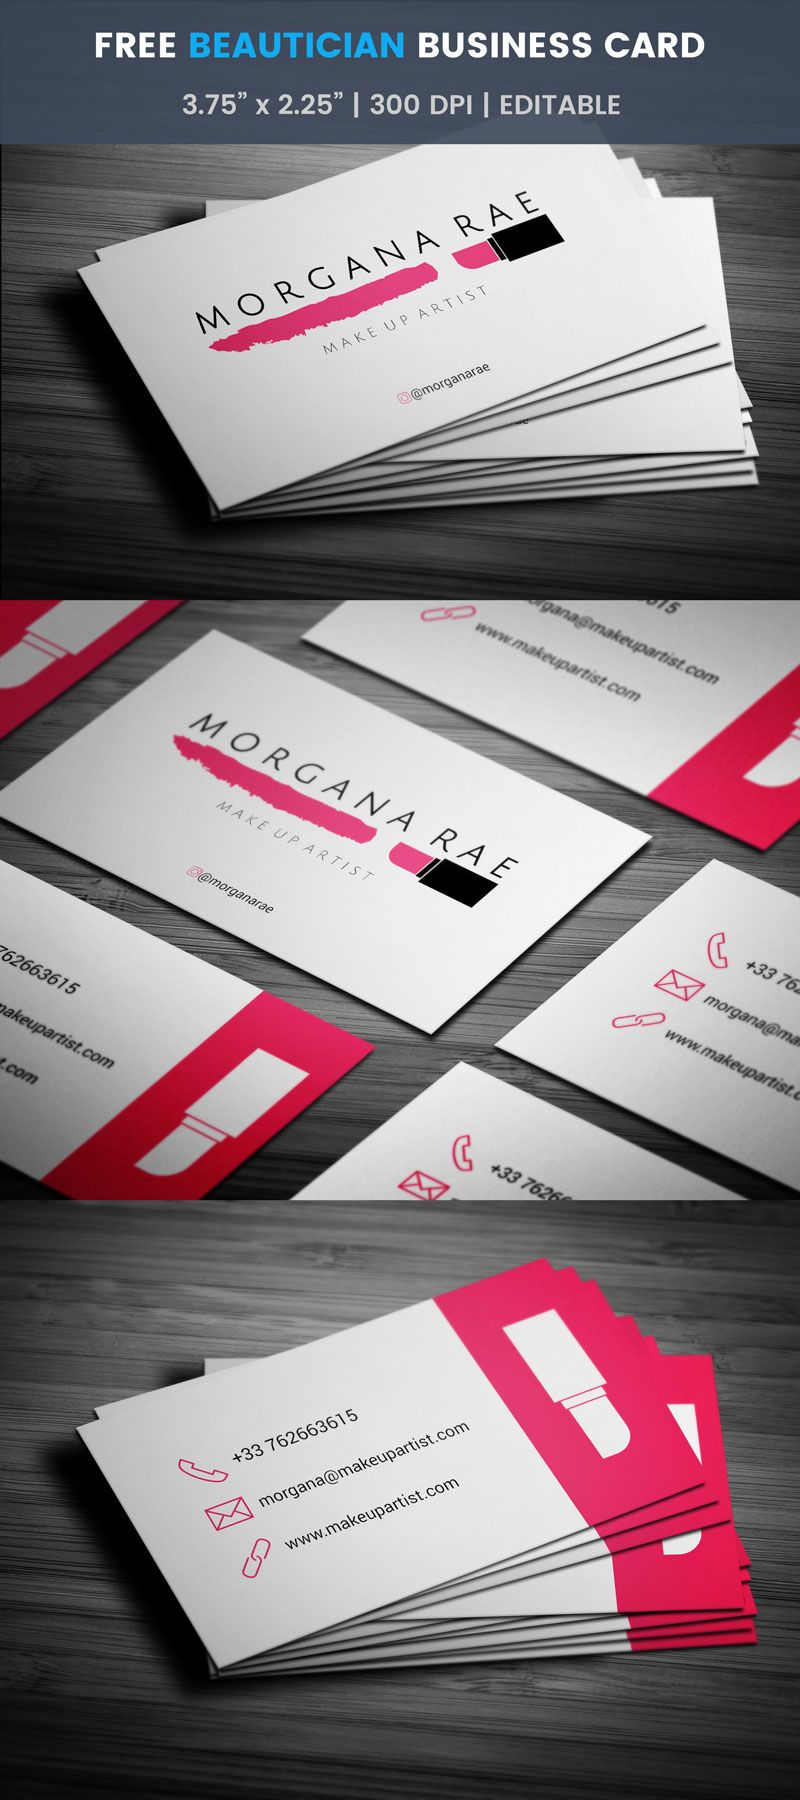 Makeup salon business card full preview free business card makeup salon business card full preview reheart Images